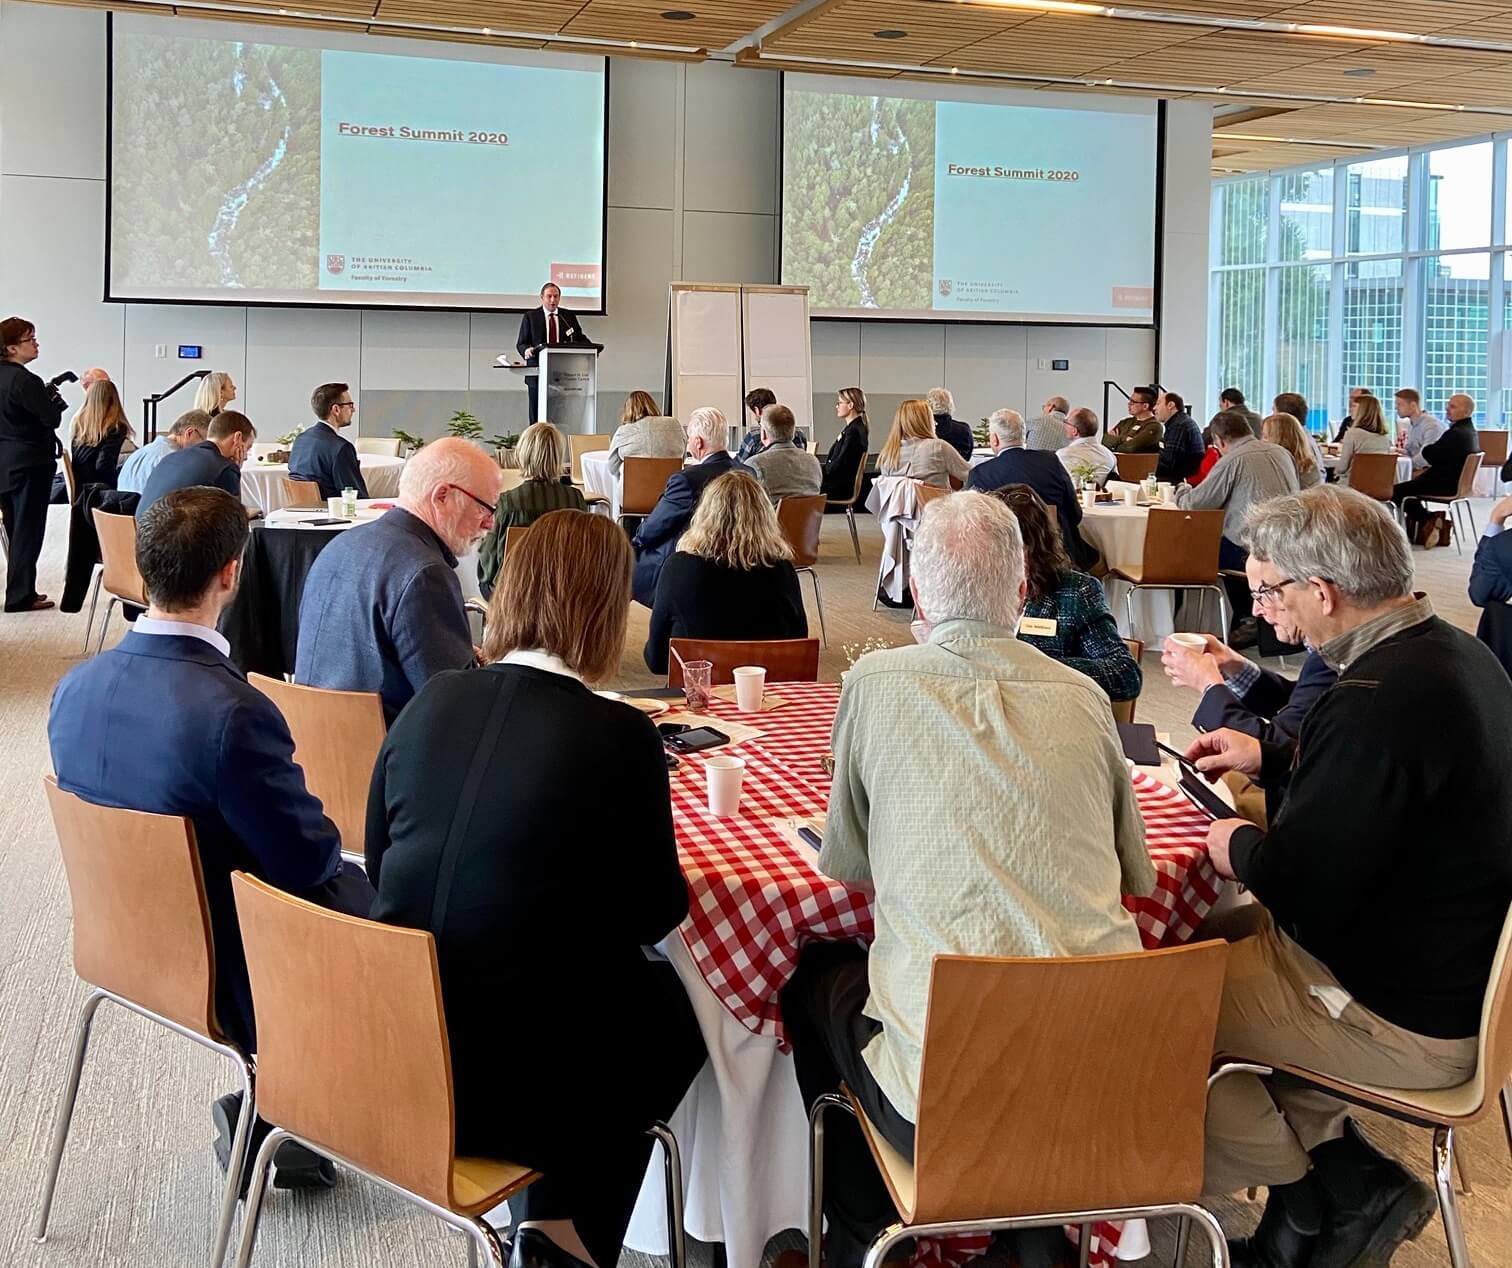 UBC Faculty of Forestry Hosts Forests Summit 2020